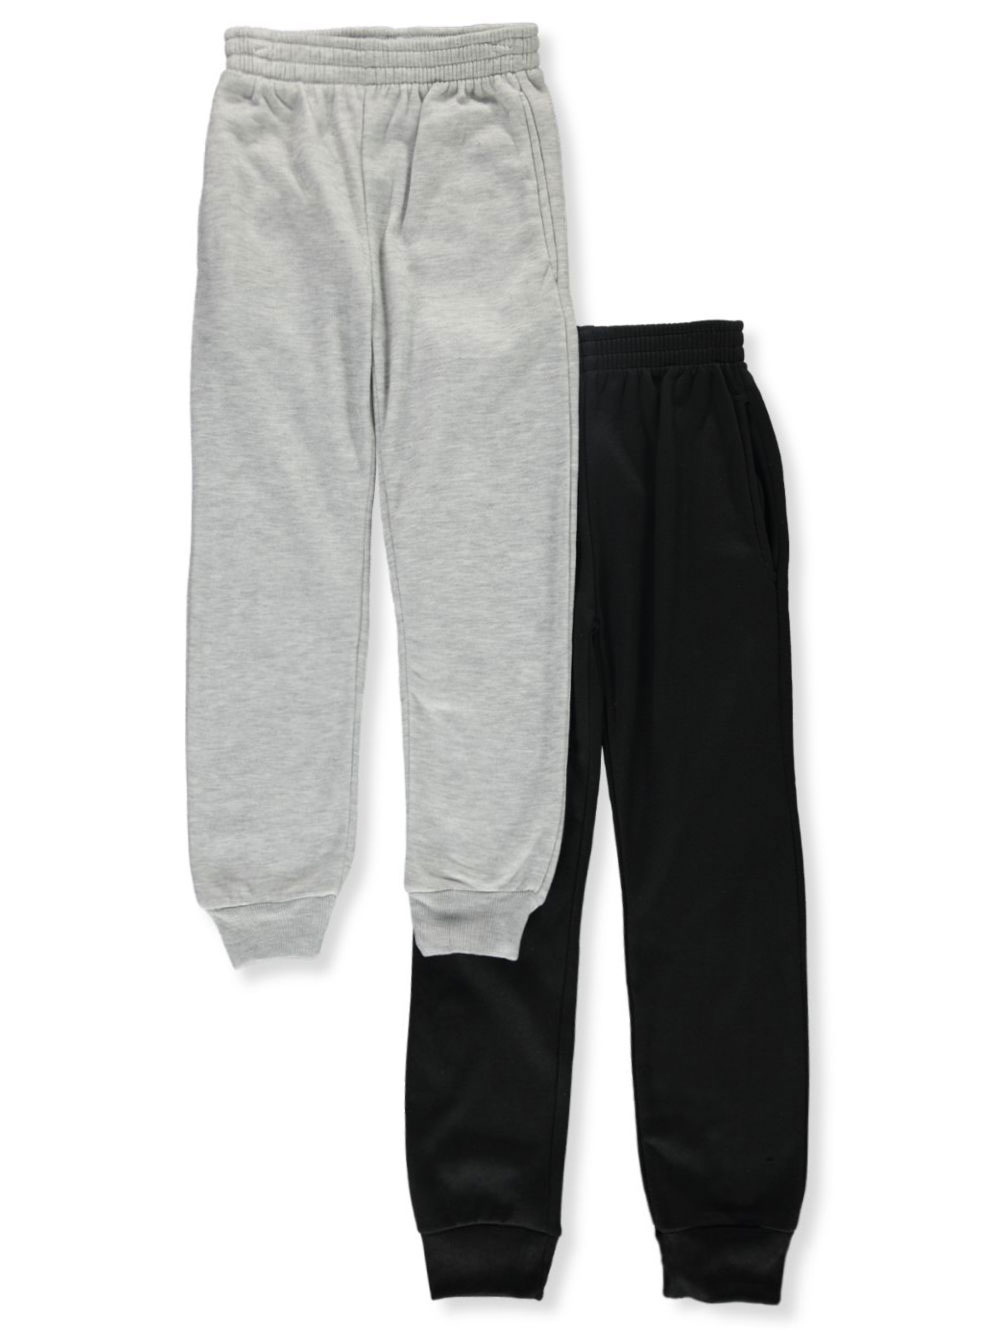 Navy and Gray Sweatpants